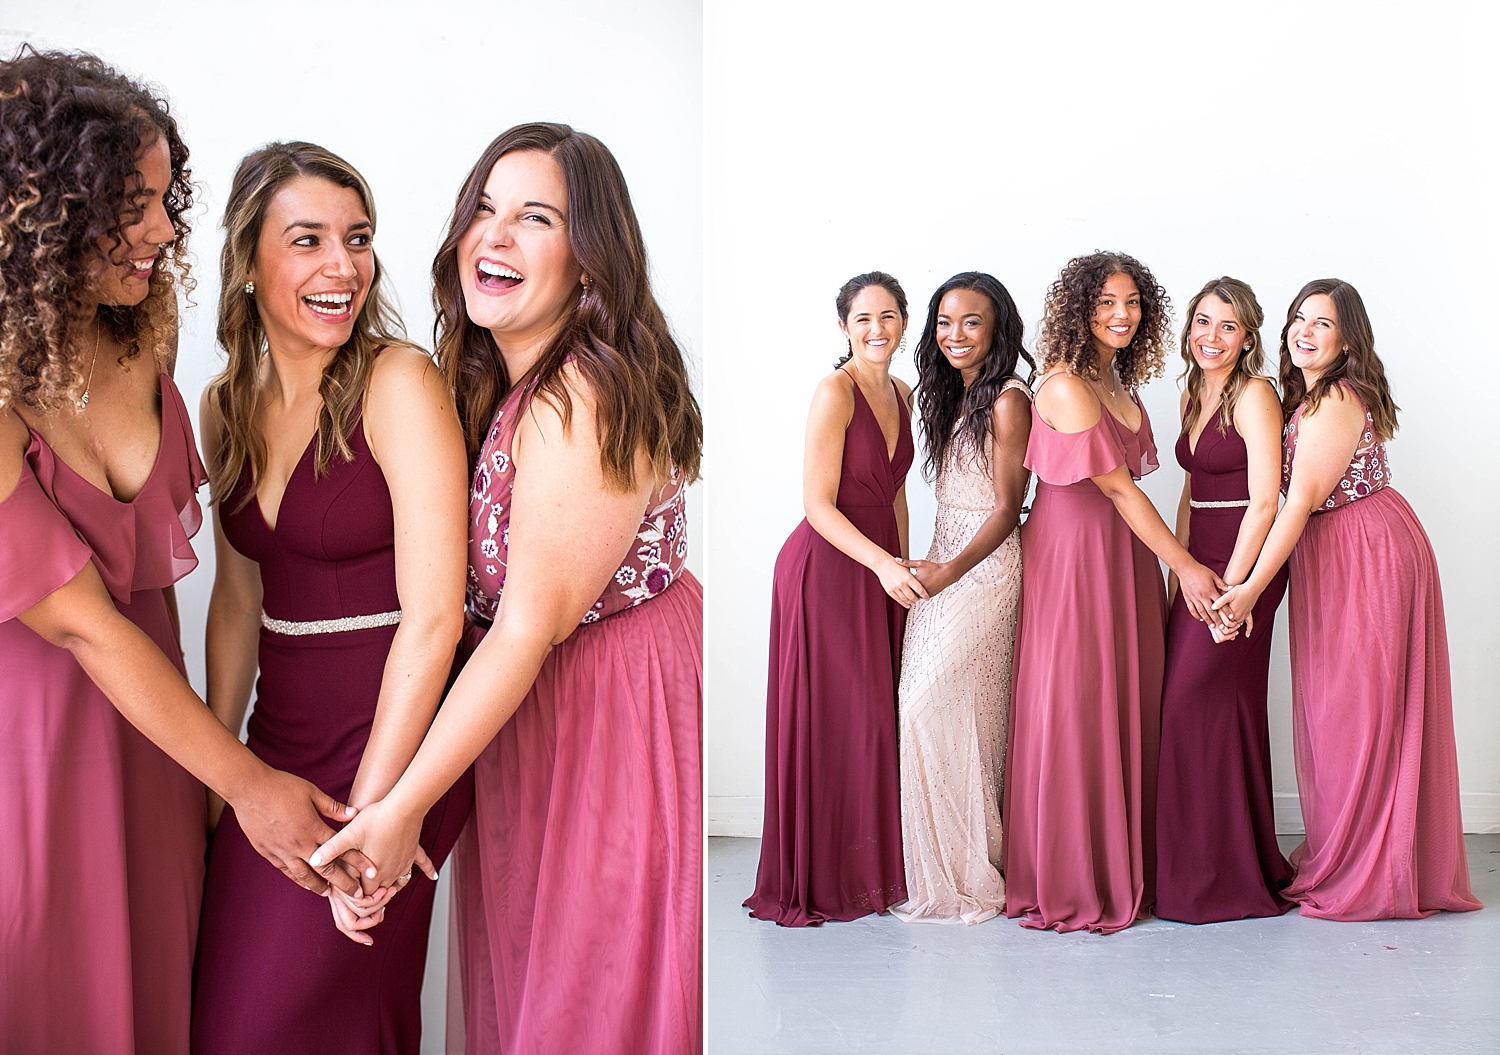 BHLDN Bridesmaids Dresses Campaign Philadelphia New Jersey Wedding Fashion Photography by Kelee Bovelle_0009.jpg